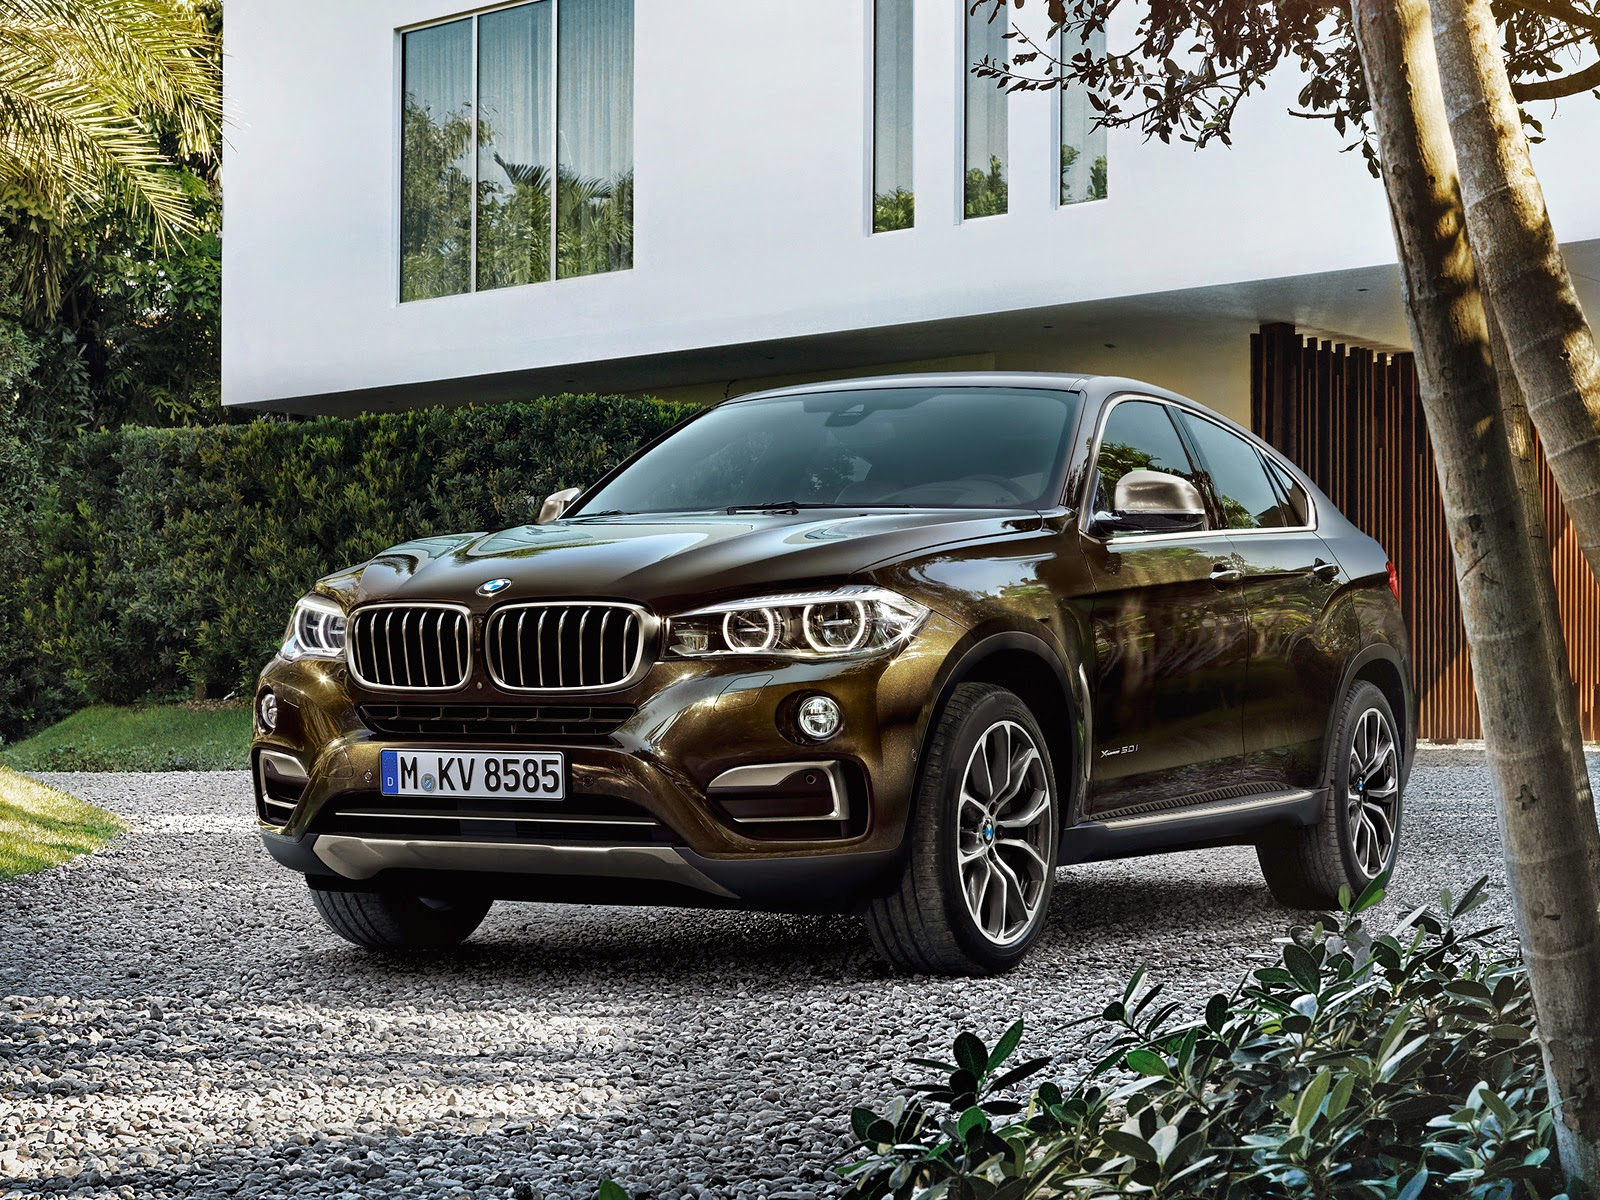 Leopaul S Blog Bmw X6 F16